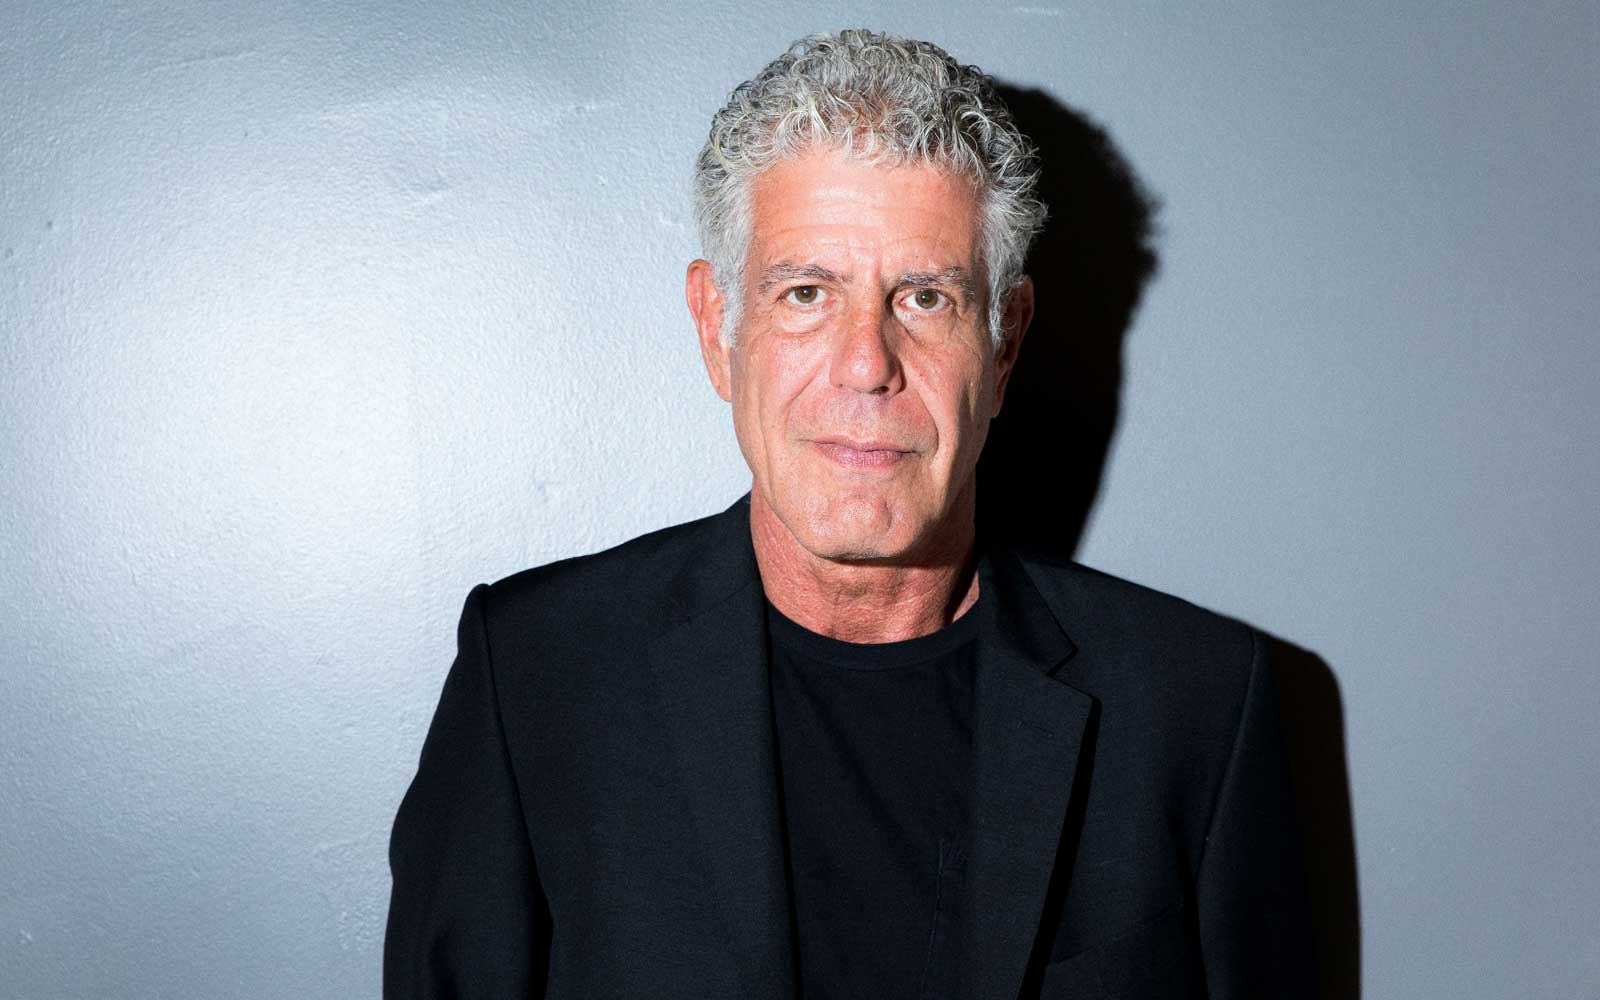 An Anthony Bourdain Documentary Is in the Works